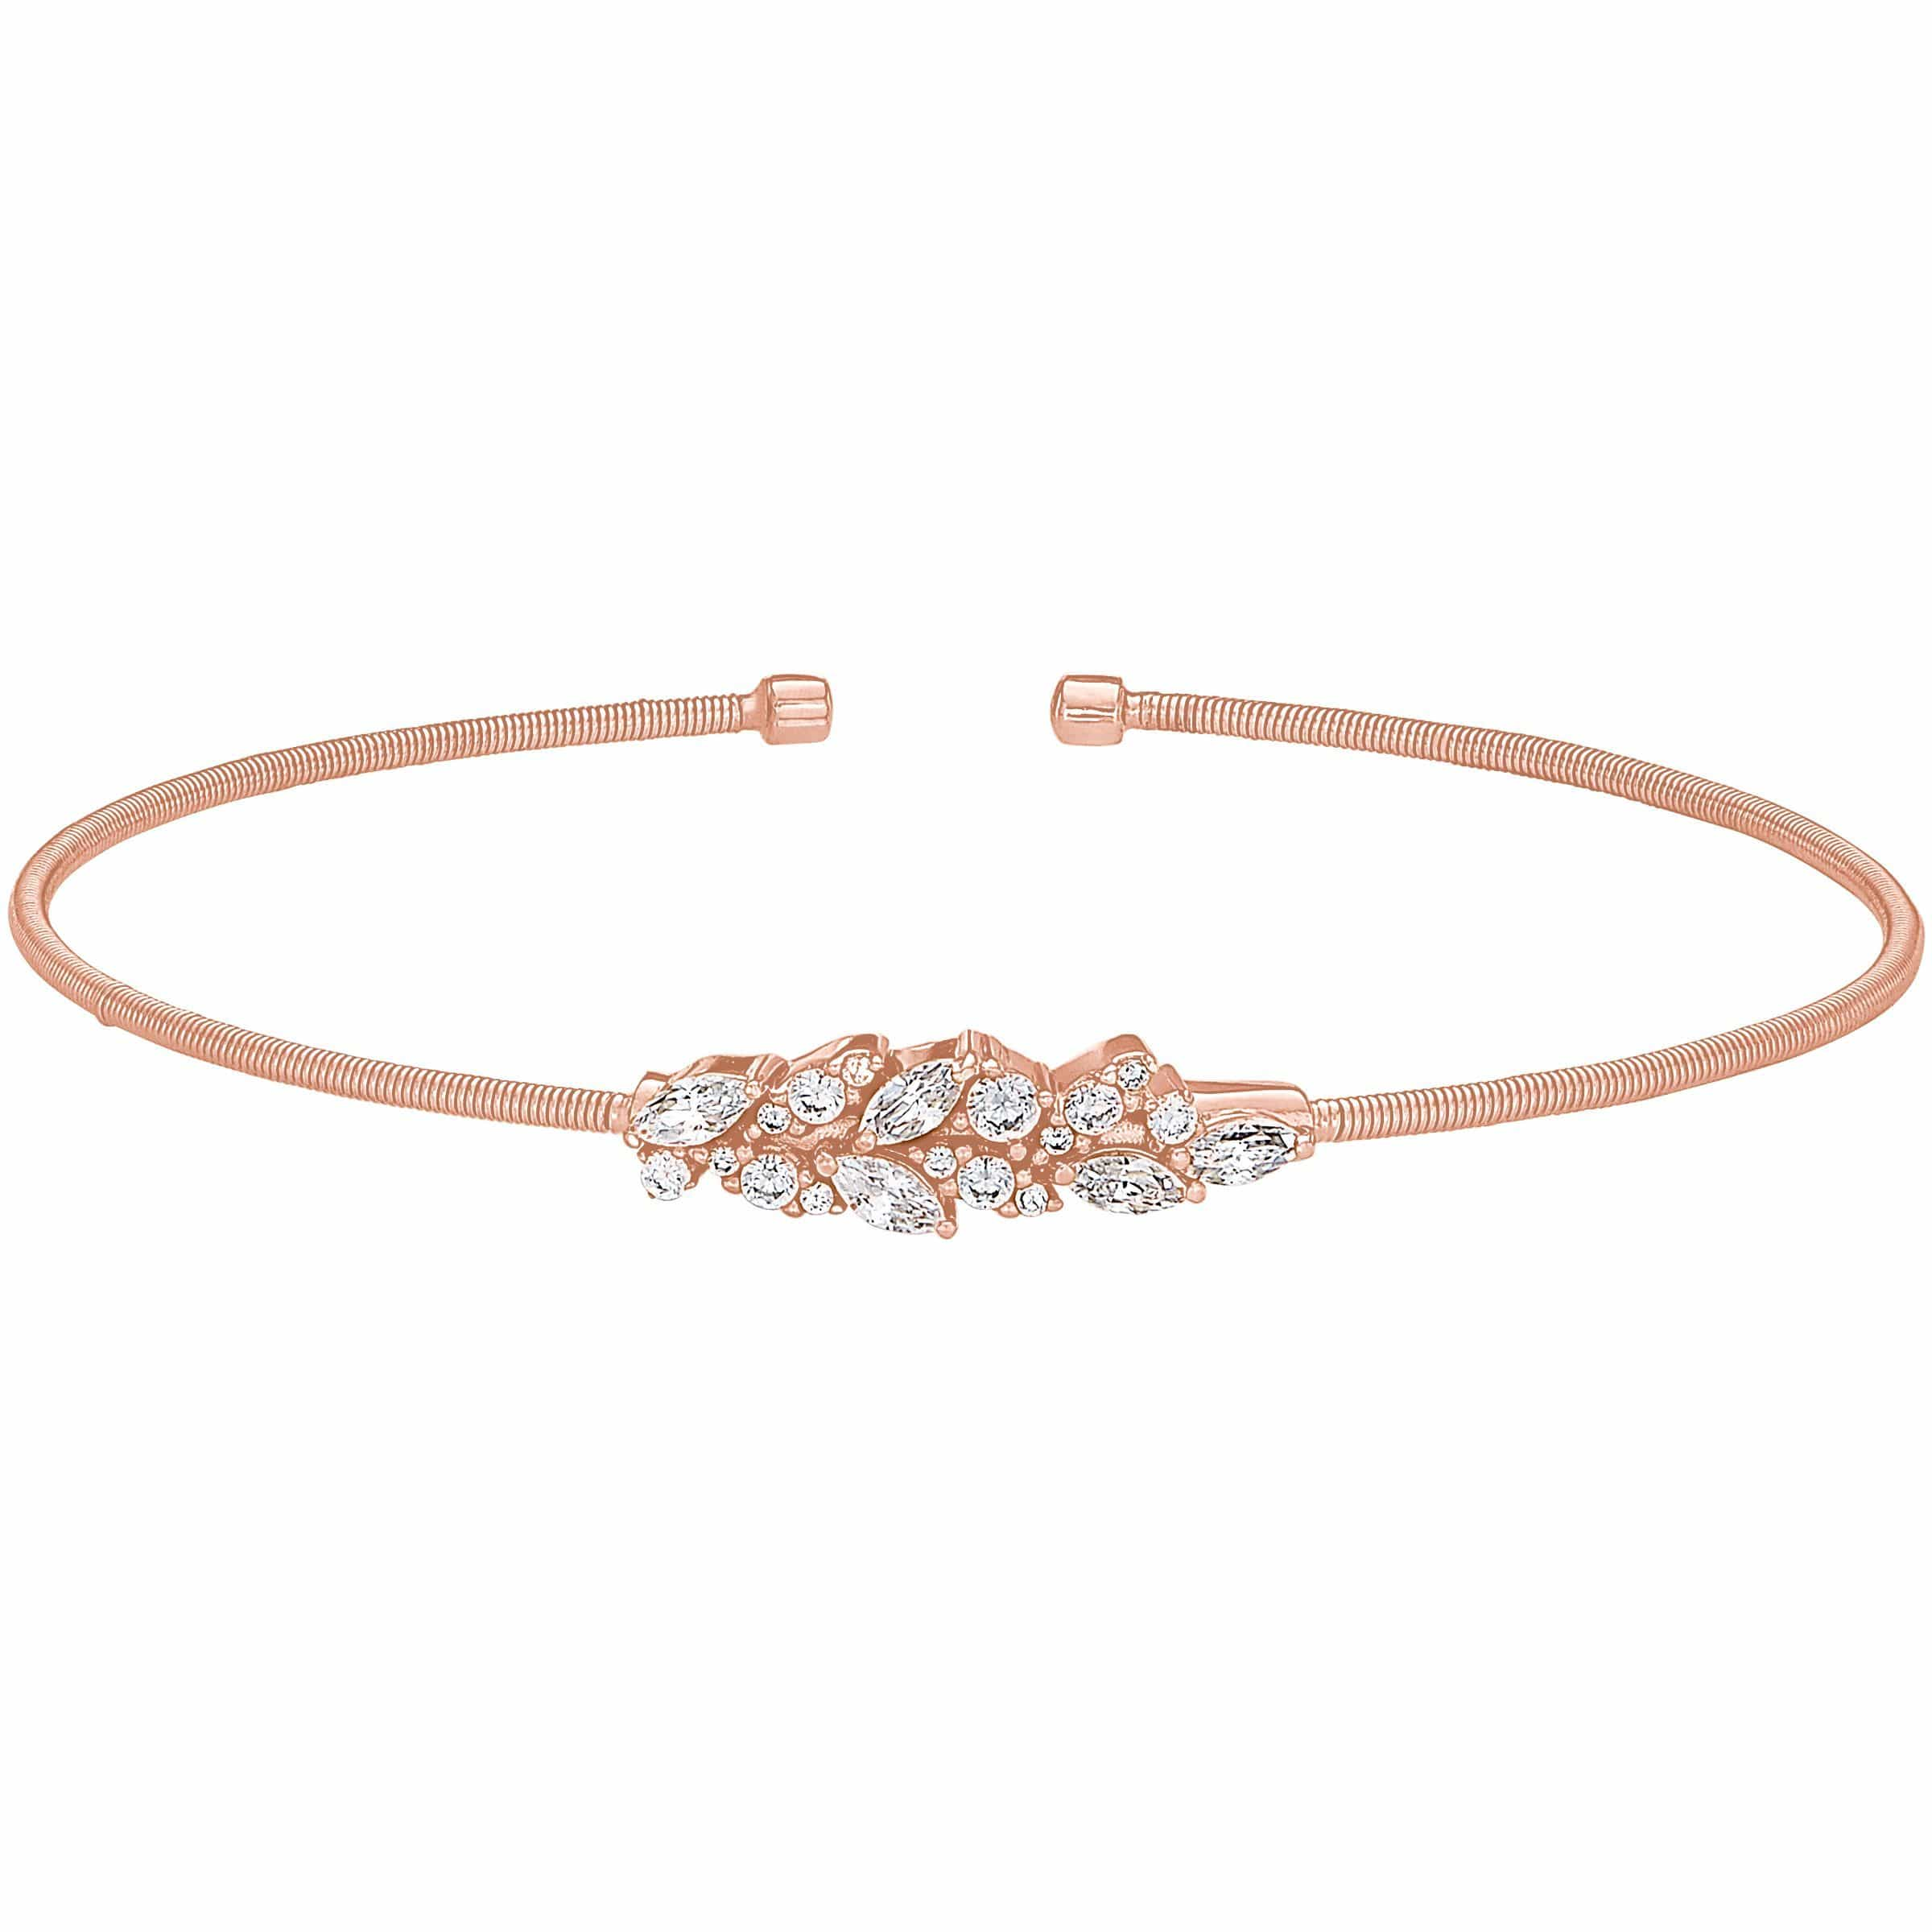 Rose Gold Finish Sterling Silver Cable Cuff Bracelet - LL7069B-RG-Kelly Waters-Renee Taylor Gallery